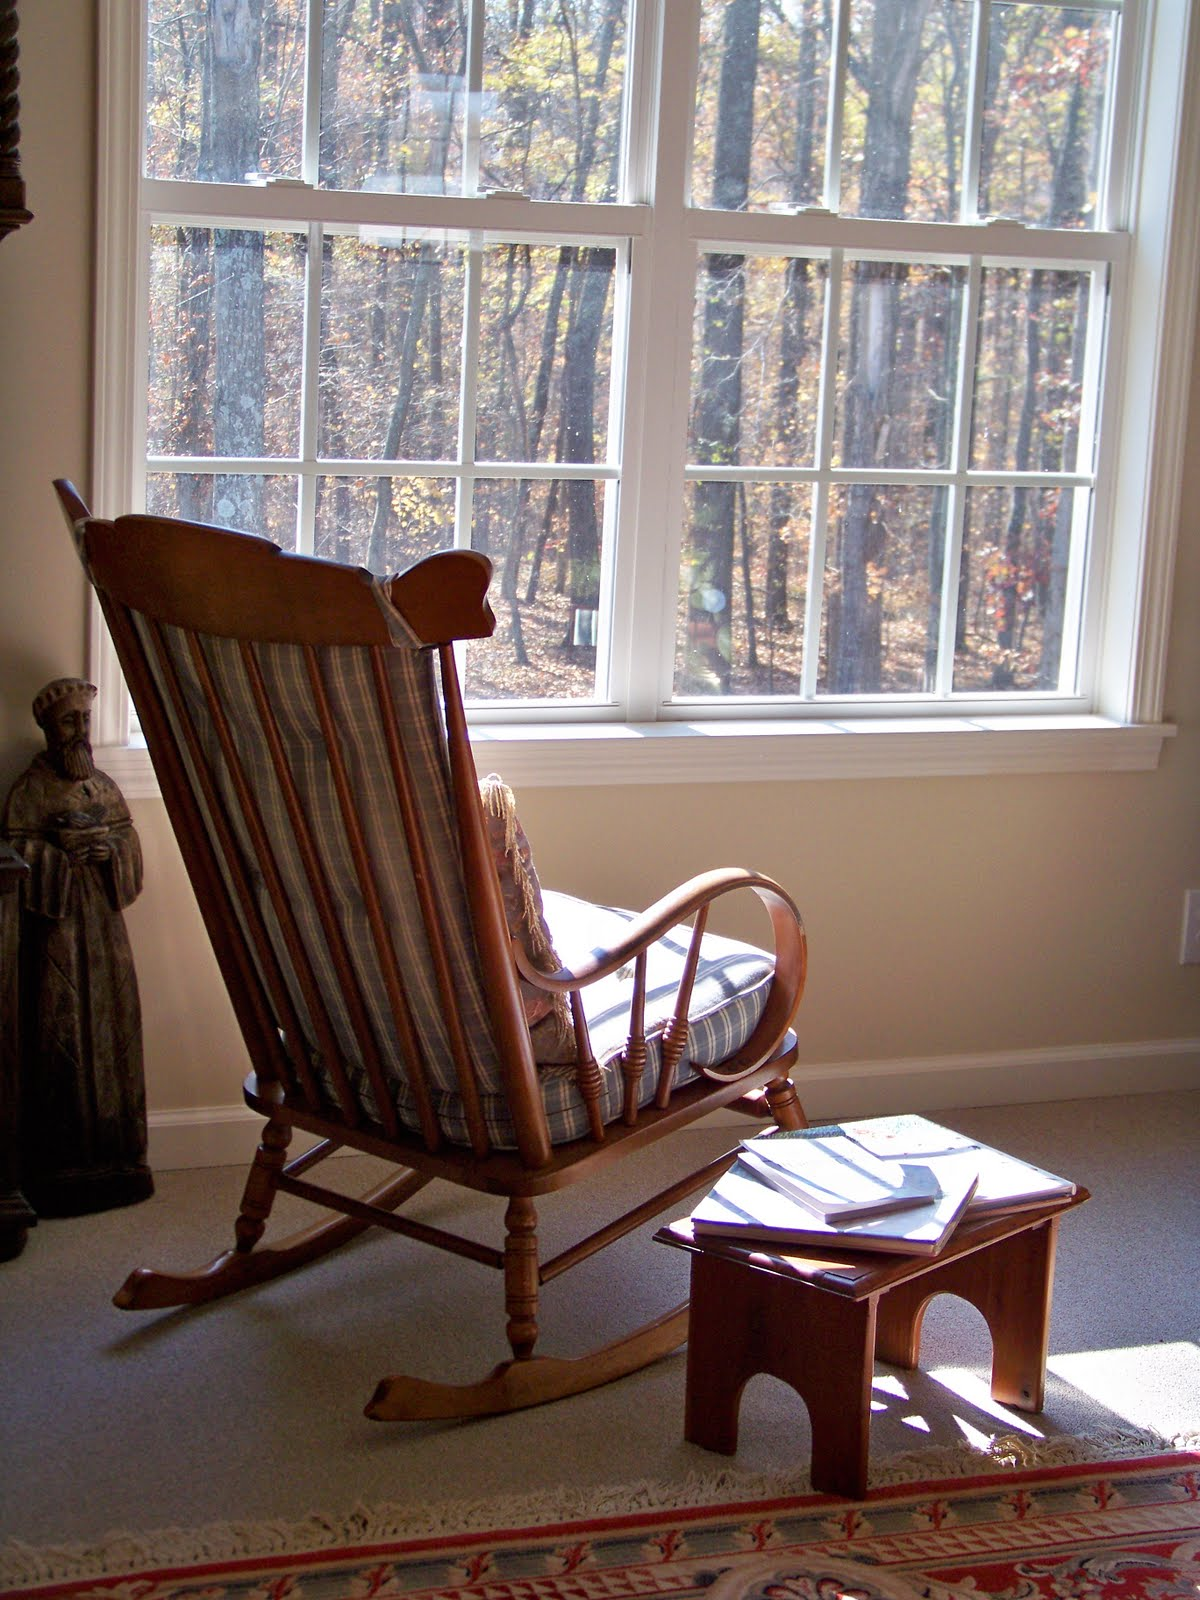 The Old Rocking Chair & My Journey To Mindfulness: The Old Rocking Chair